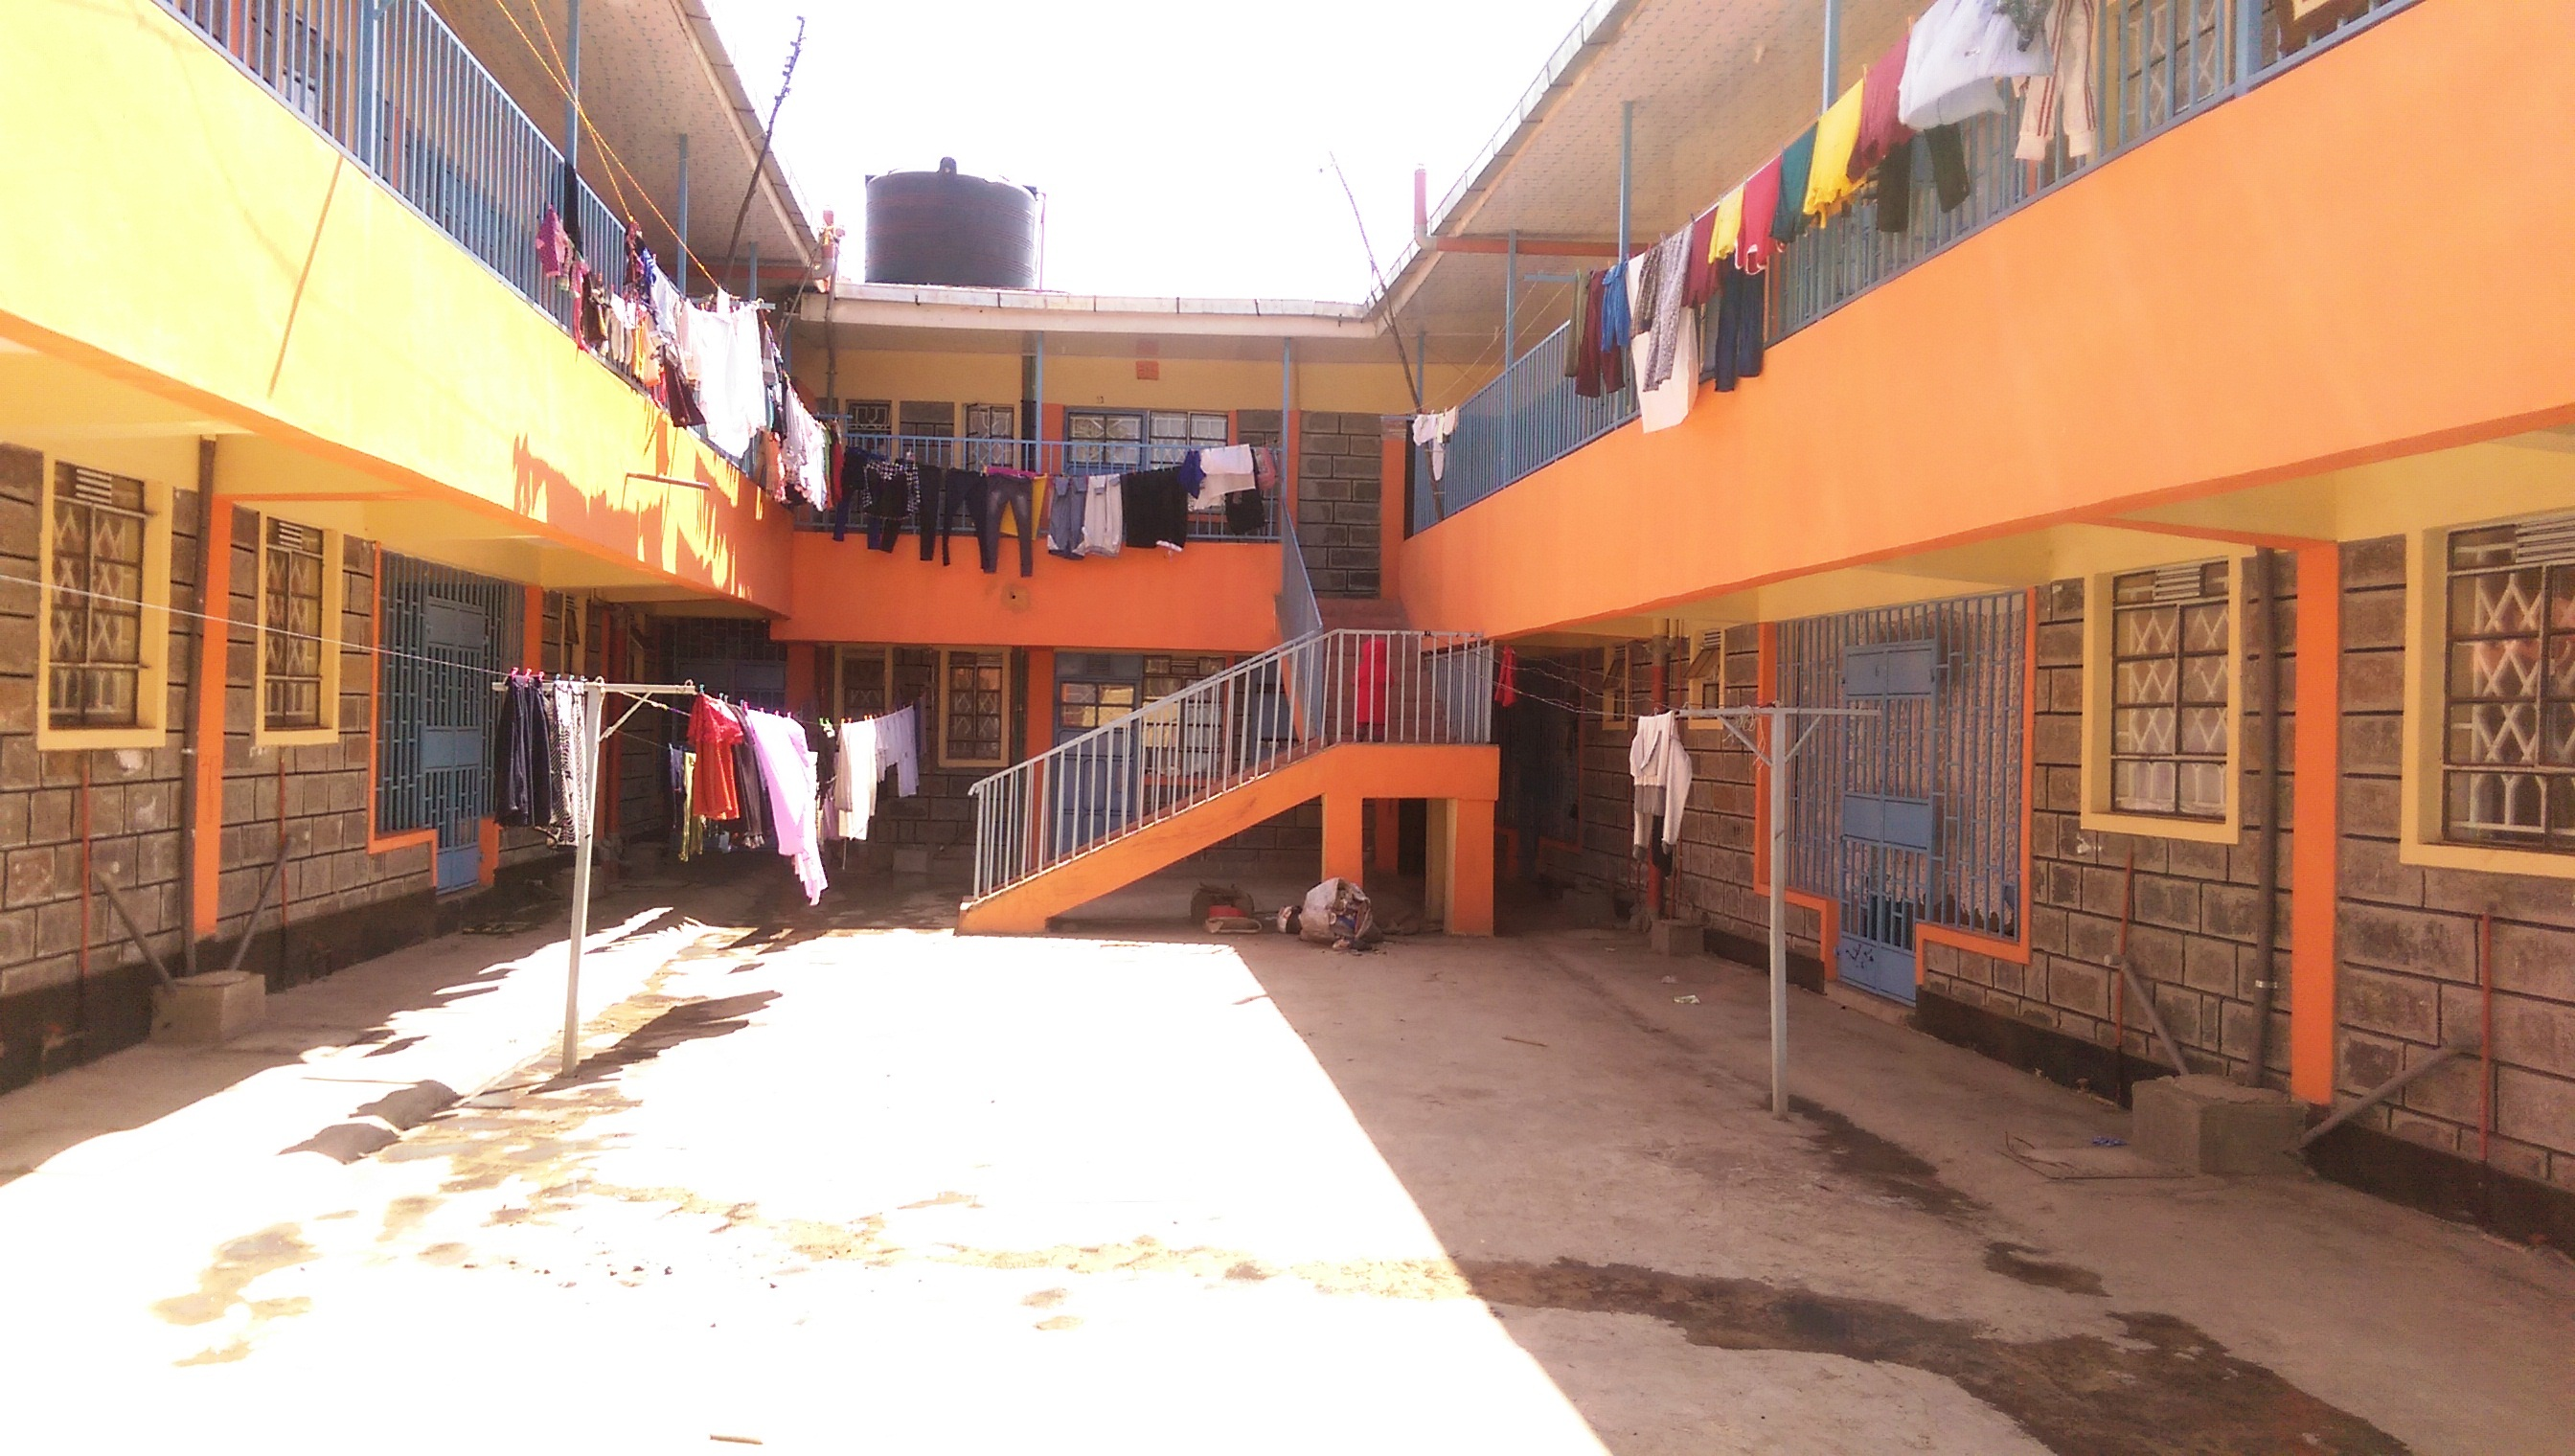 1 bedroom to let in Mawanga center.